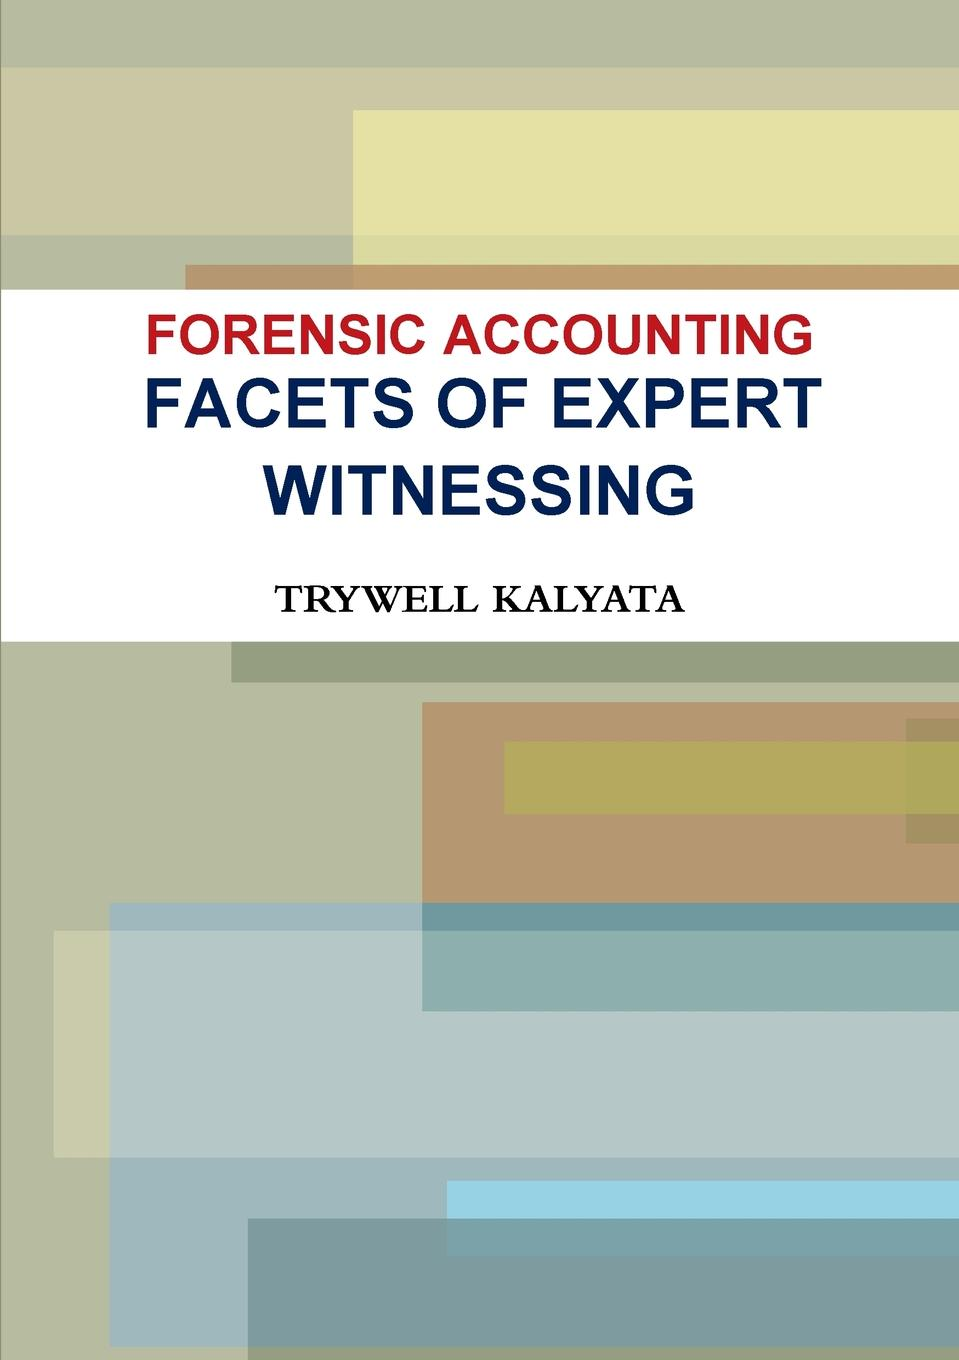 FORENSIC ACCOUNTING. FACETS OF EXPERT WITNESSING Forensic accounting expert witnessing outlines the key facets of what...